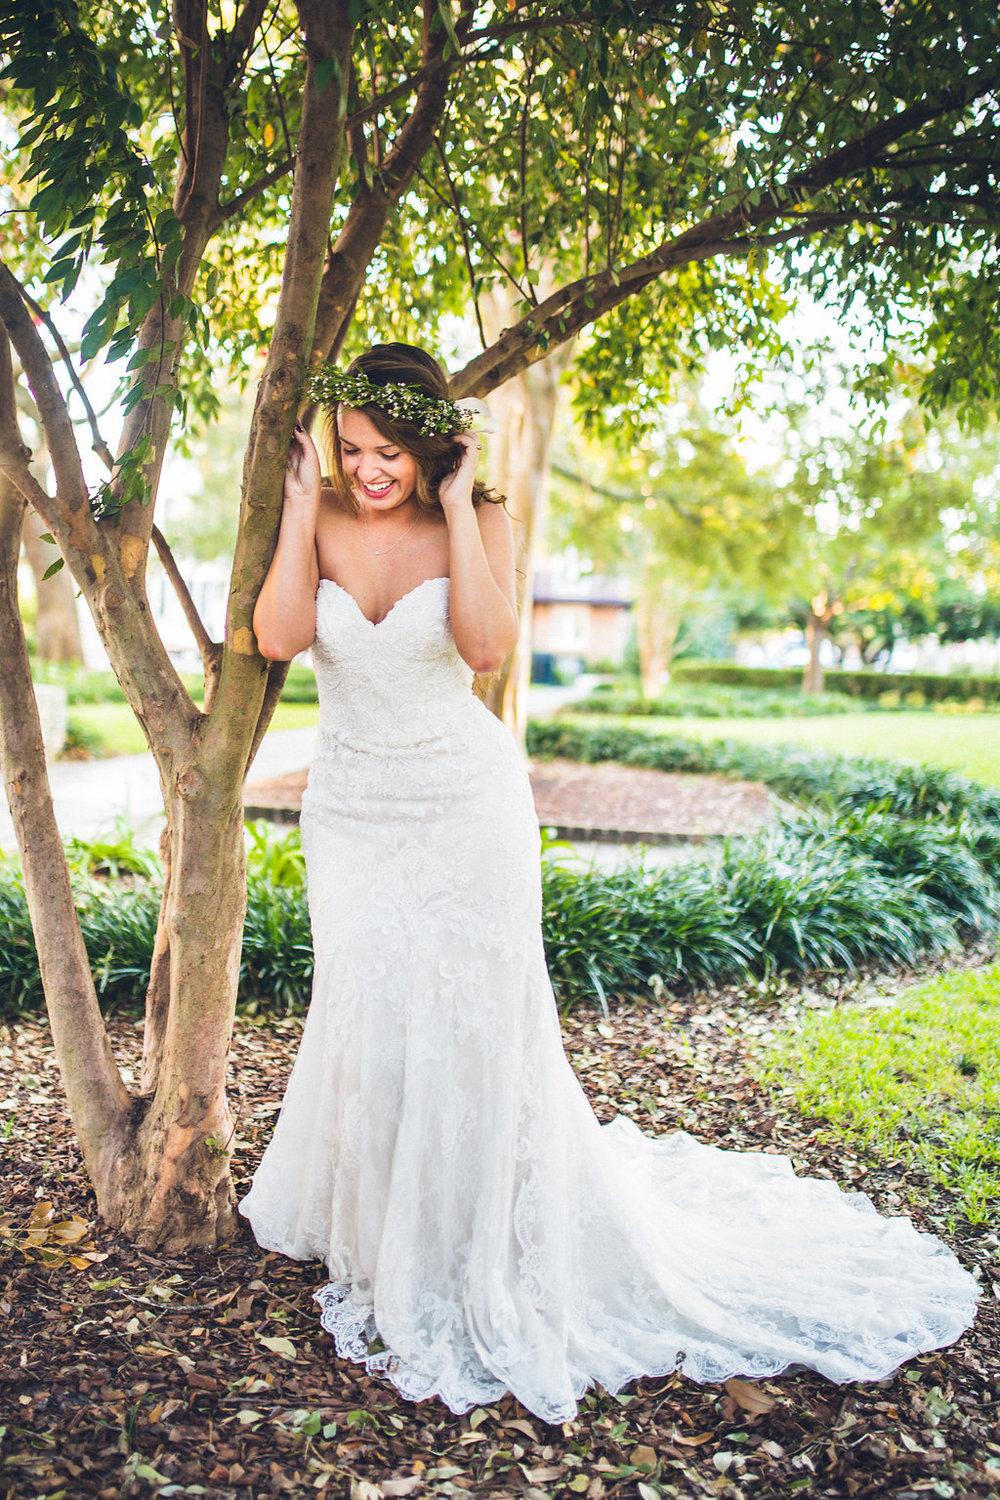 alexis-sweet-photography-ivory-and-beau-bridal-boutique-mirelle--maggie-sottero-rebecca-ingram-lace-mermaid-savannah-wedding-savannah-square-wedding-flower-crown-boho-bride-savannah-wedding-planner-savannah-bridal-boutique-savannah-florist-12.jpg